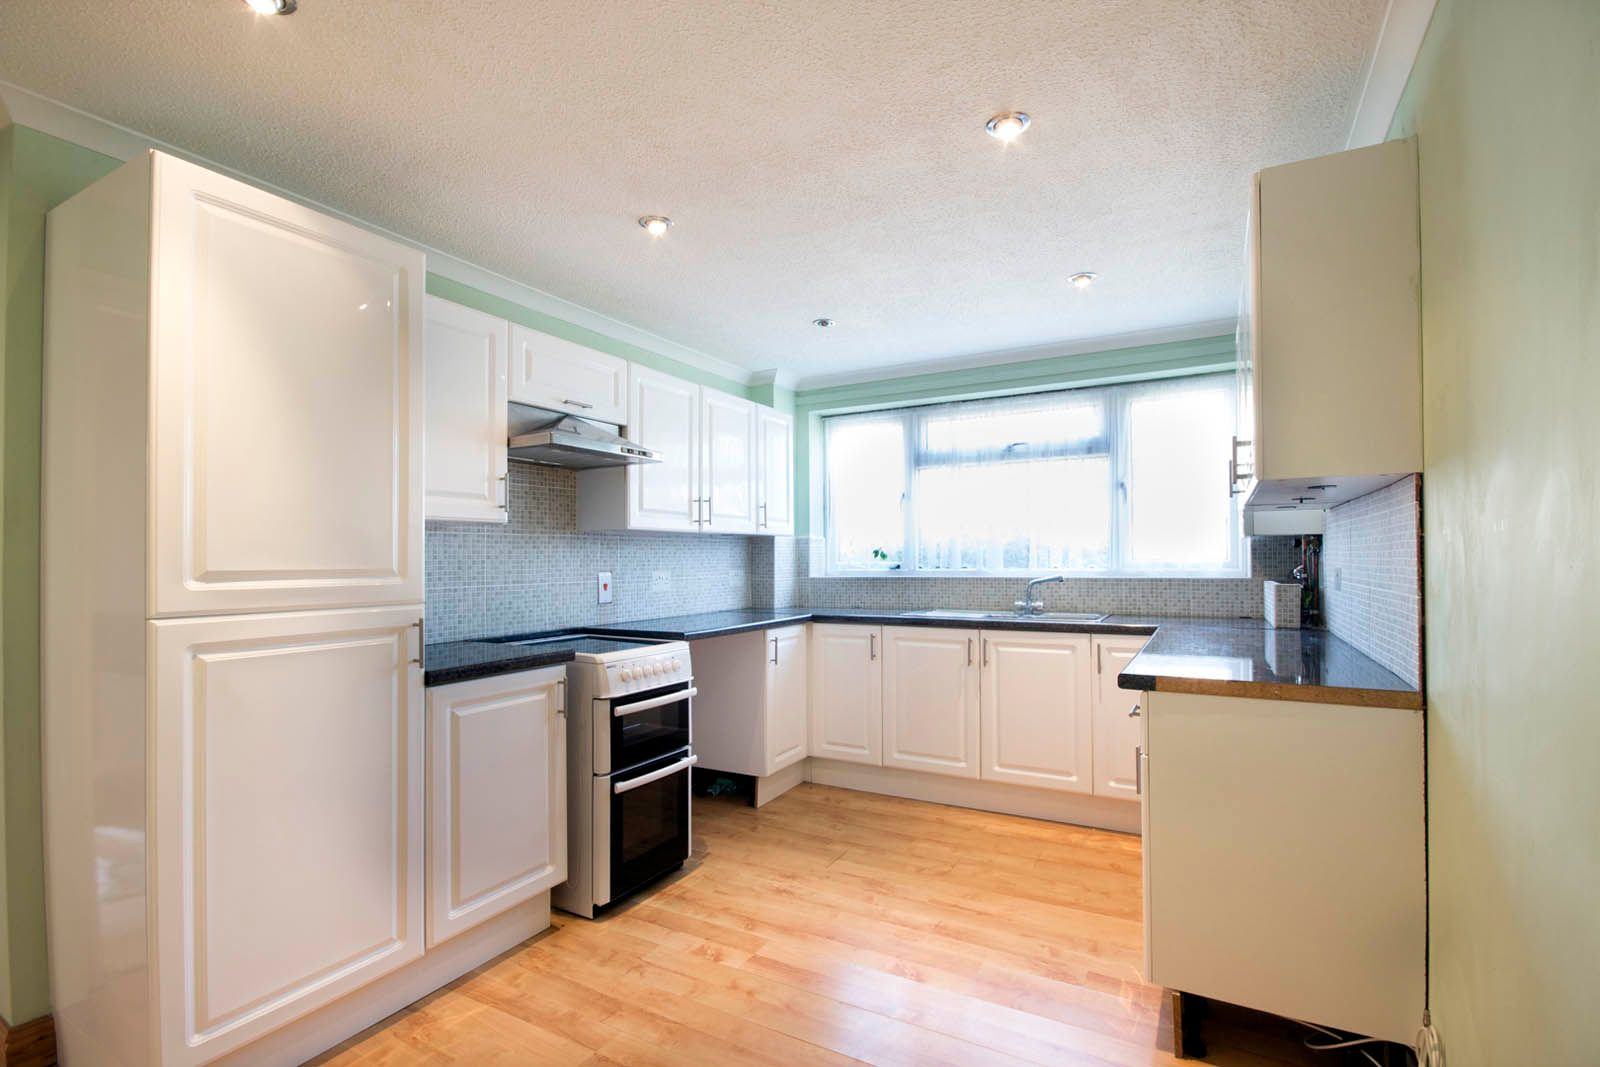 2 bed Apartment for sale in Rustington - Kitchen (Property Image 1)